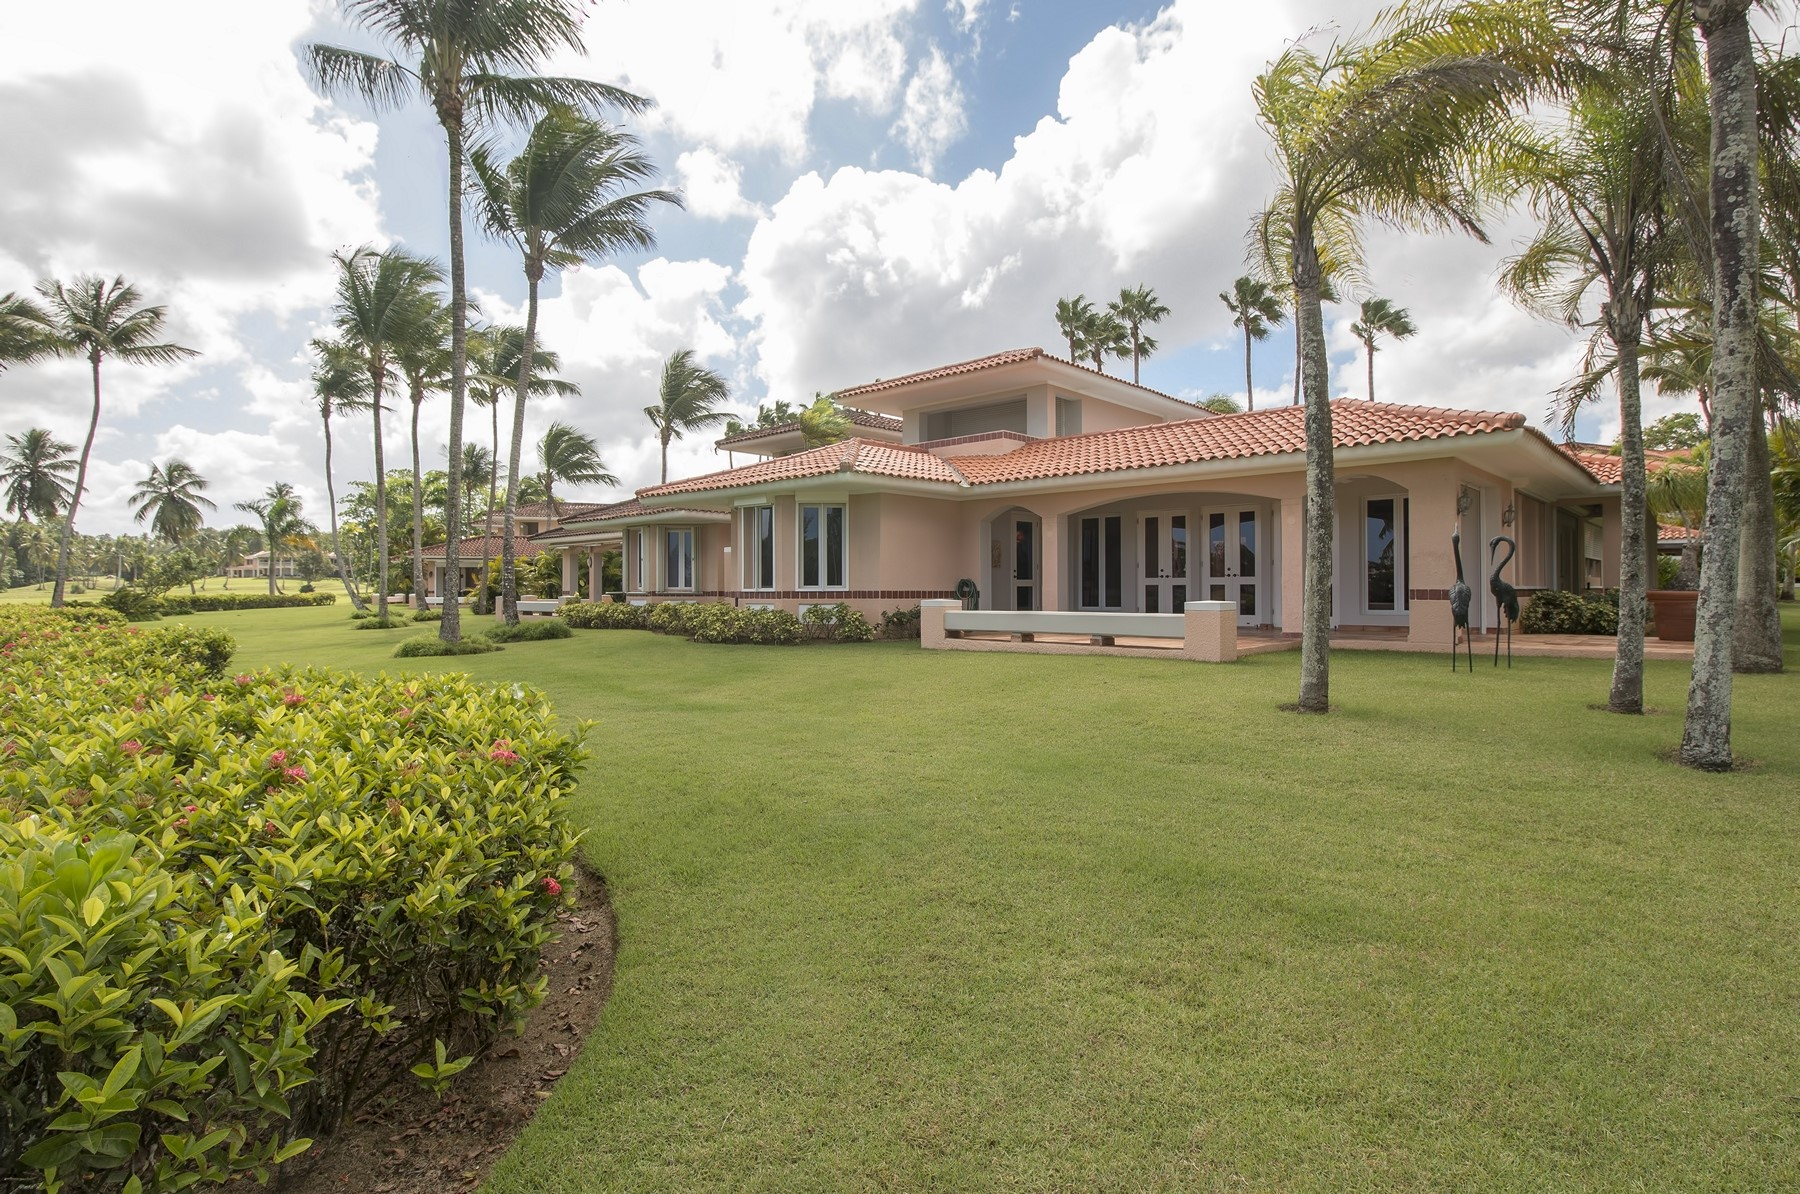 Beach Front Home For Sale In Puerto Rico San Juan